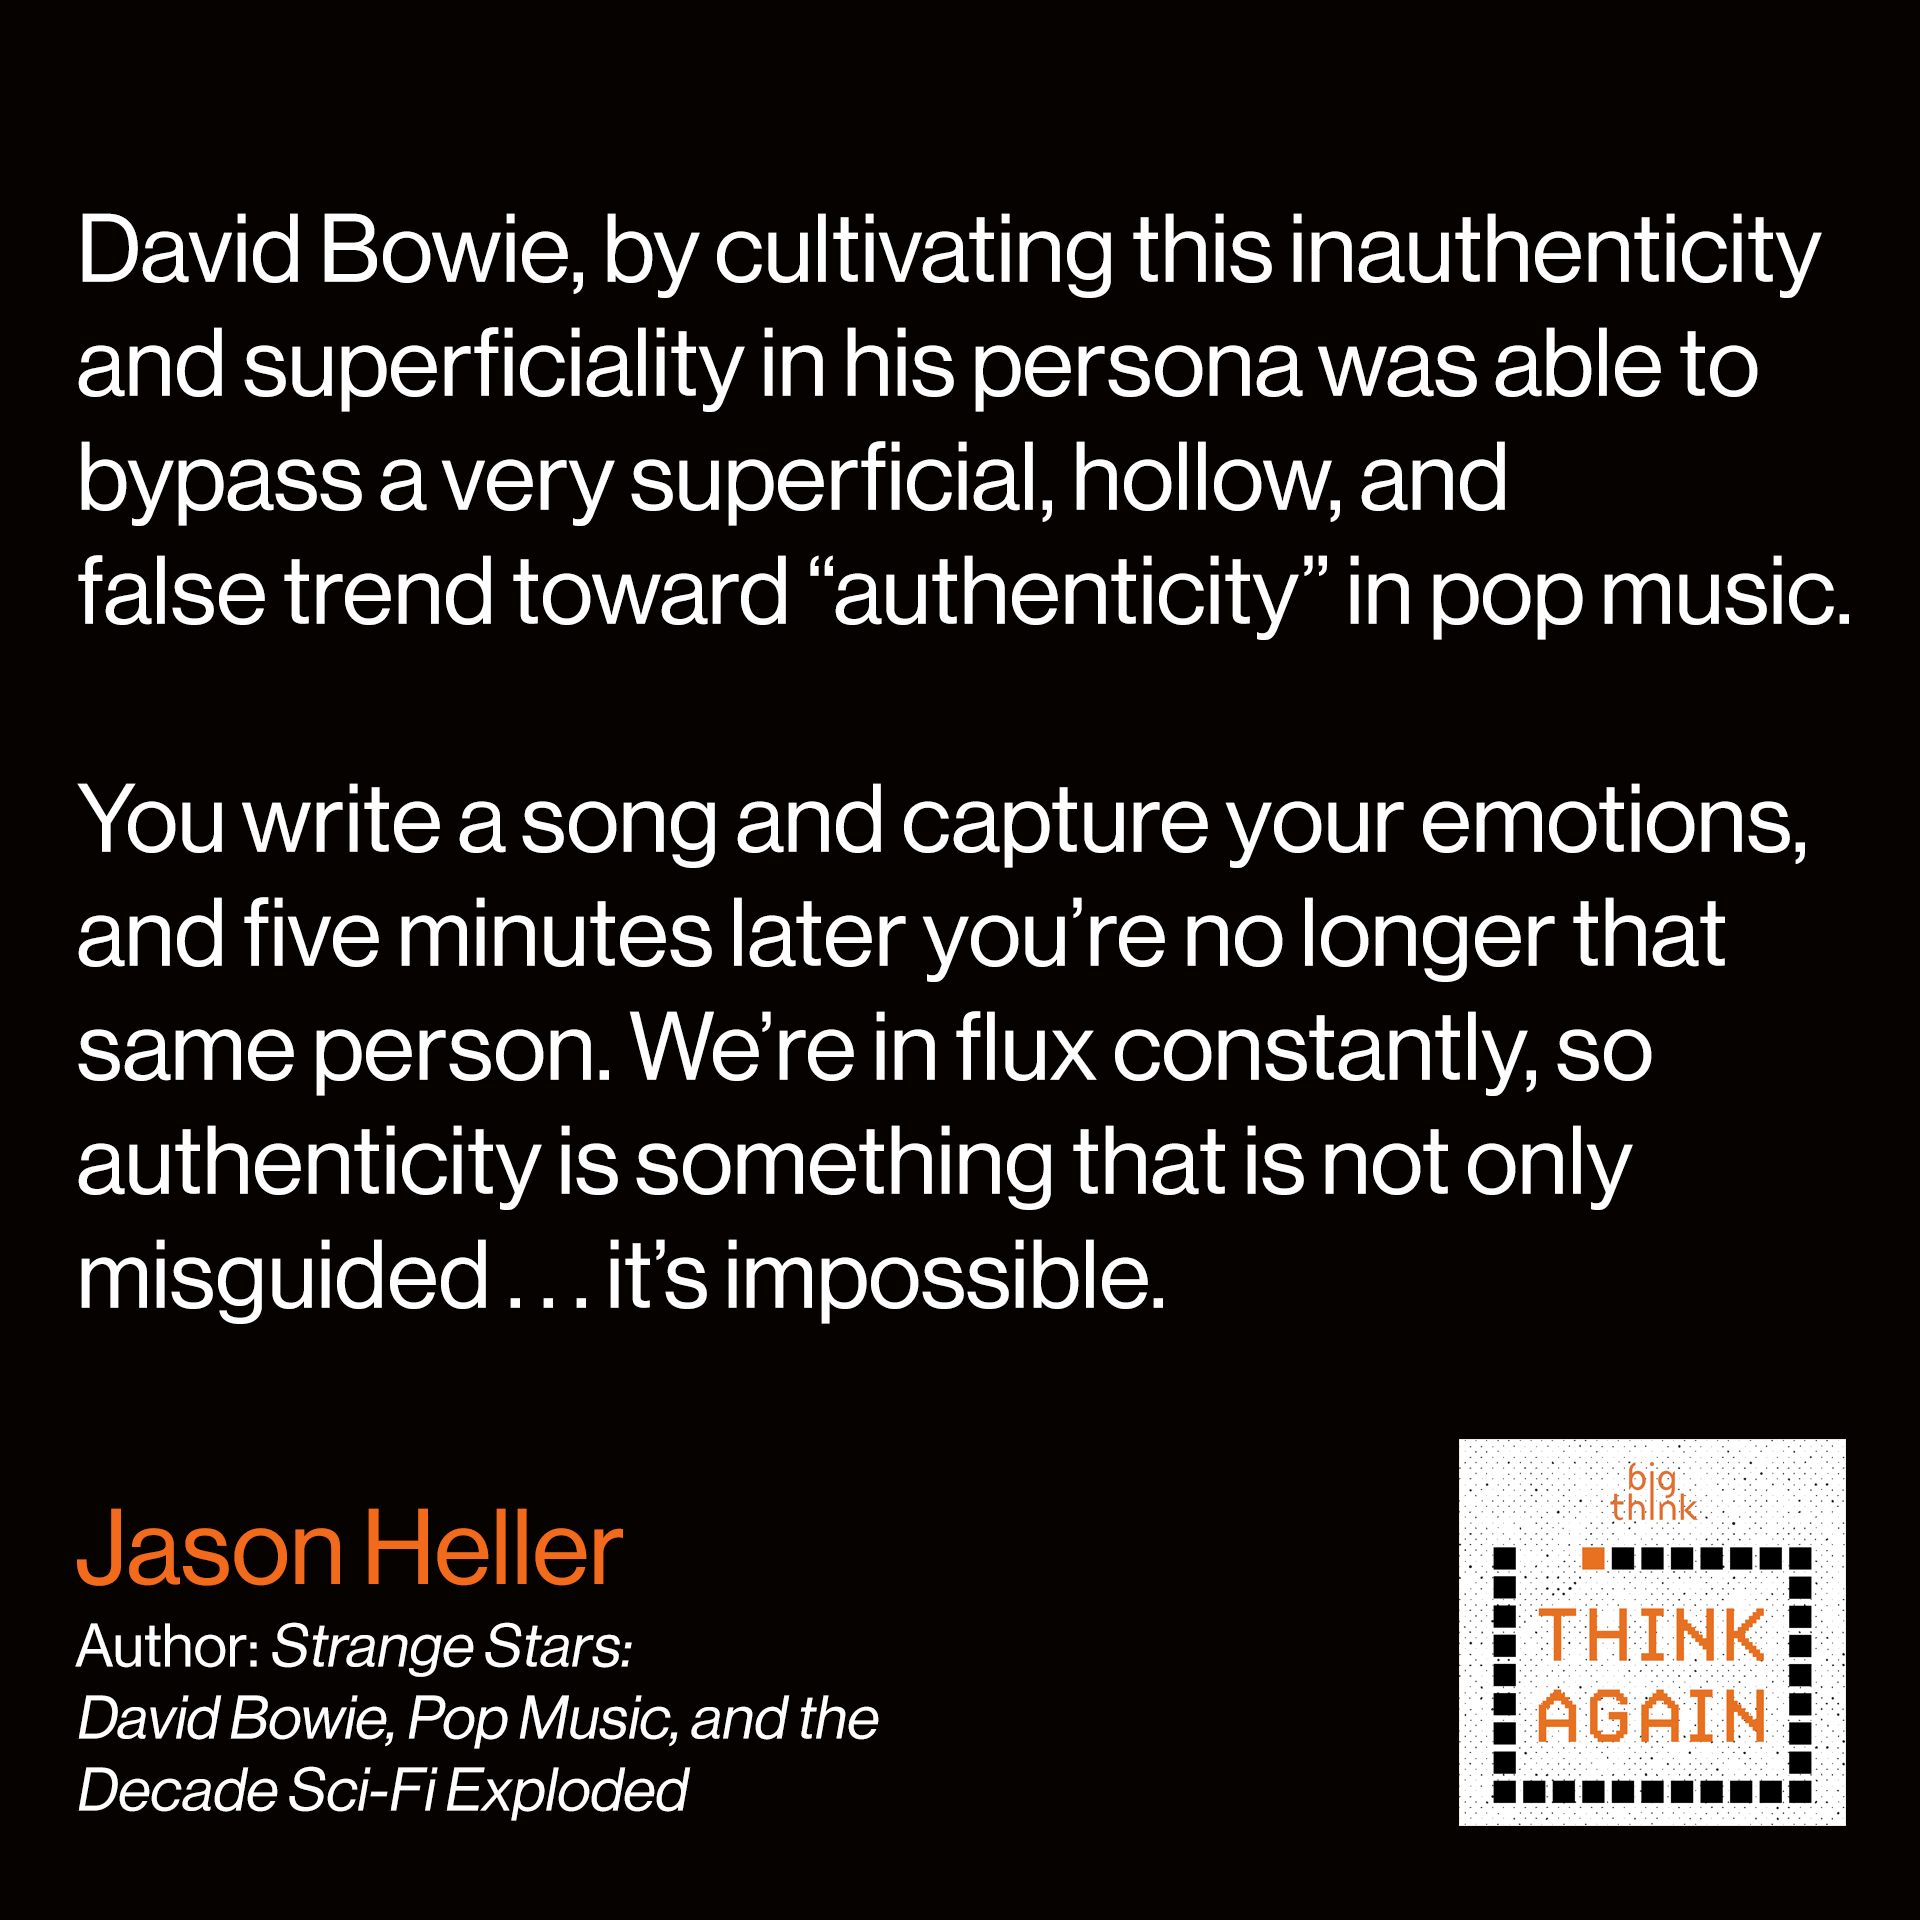 "Jason Heller Quote: David Bowie, by cultivating this inauthenticity and superficiality in his persona was able to bypass what to me seems like a very superficial, hollow, and false trend toward ""authenticity."" Because who really is that one person? You write a song and capture your emotions, and five minutes later you're no longer that same person. We're in flux constantly, so authenticity to me is something that is not only misguided…it's impossible."